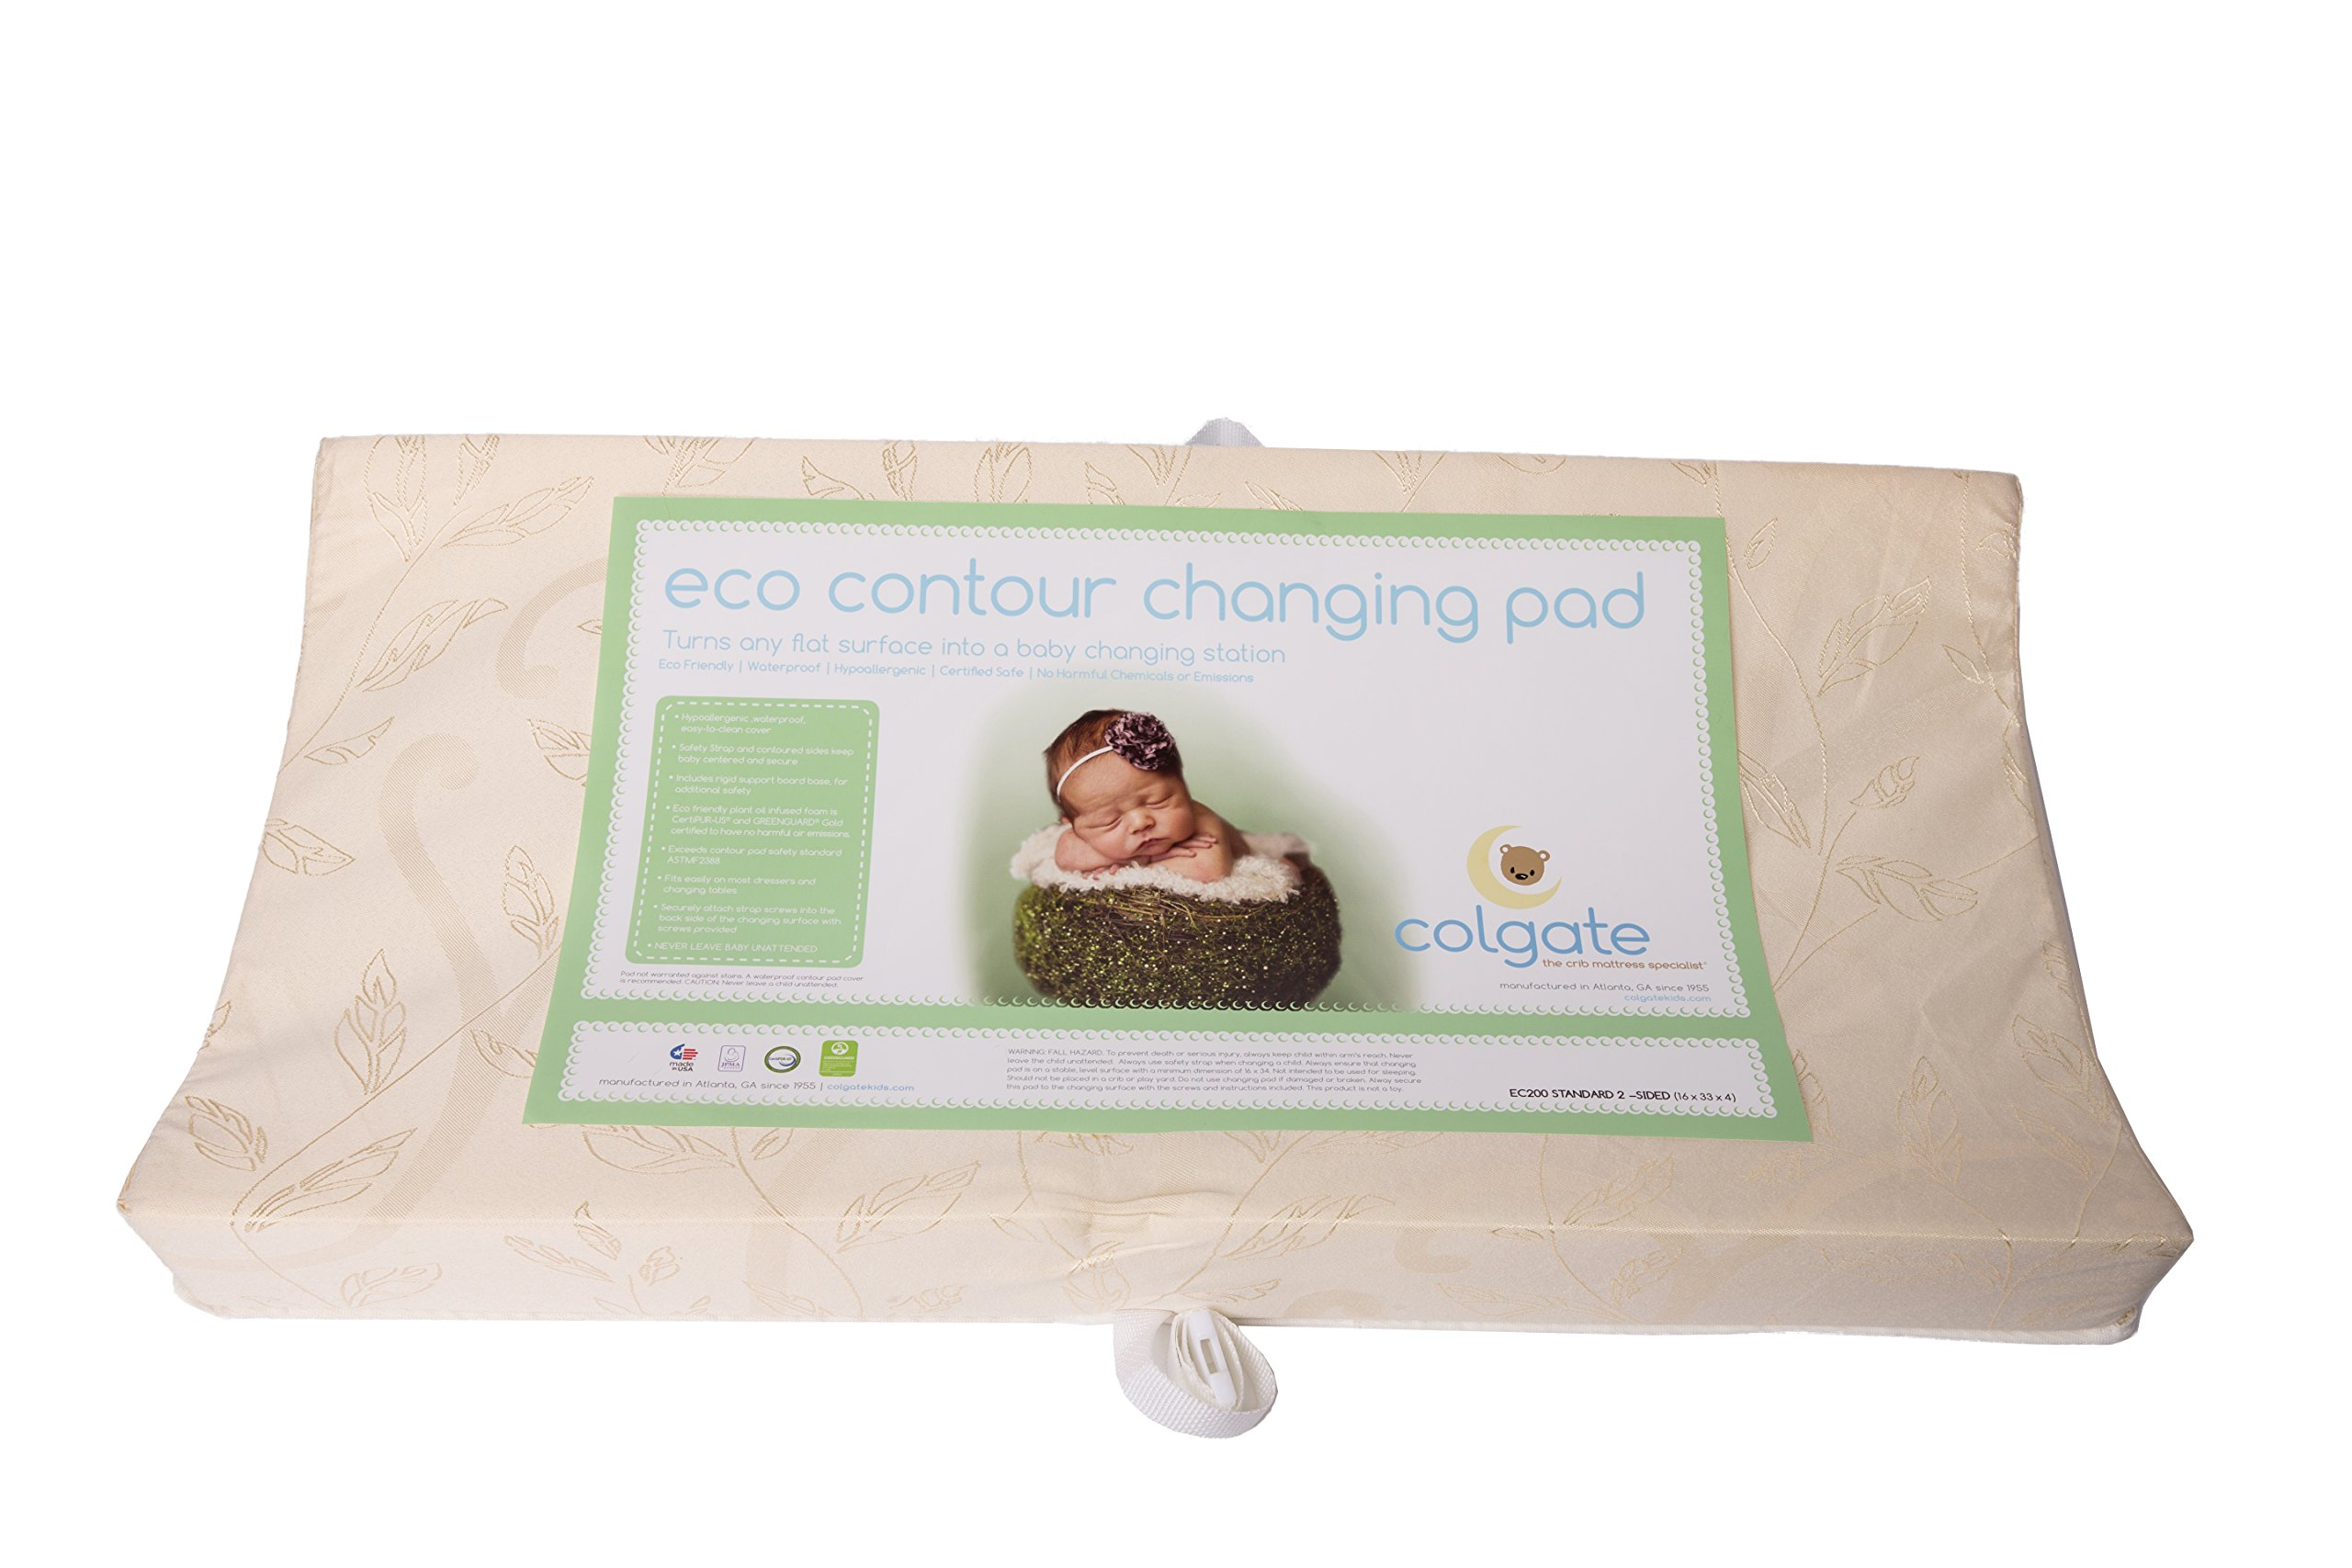 "Colgate EcoPad 2-Sided Contour Changing Pad - 33"" x 16"" x 4"" with Damask Cloth Waterproof Cover, Natural"